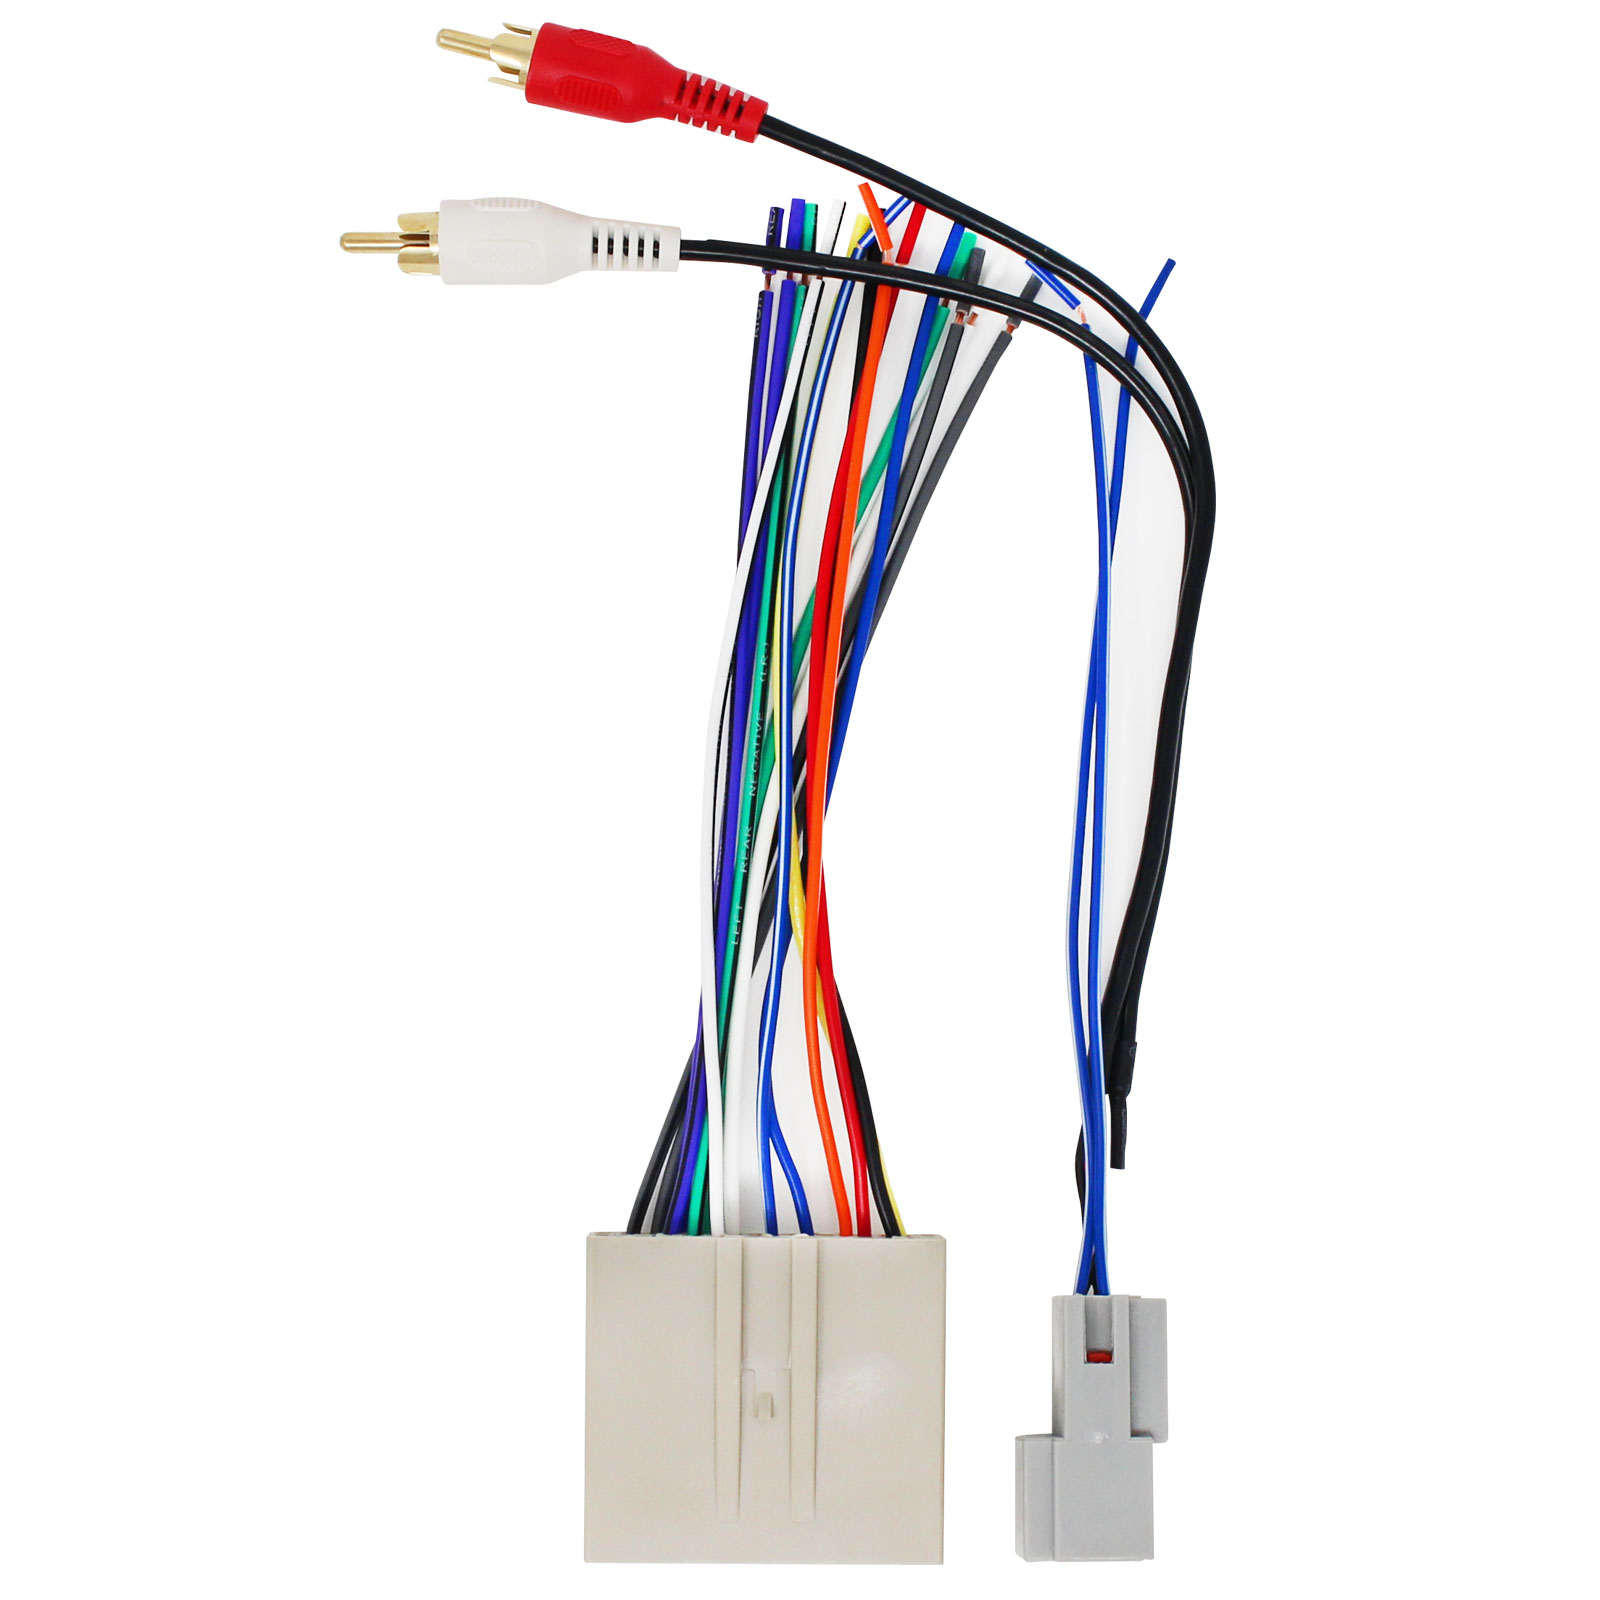 hight resolution of replacement radio wiring harness for 2007 hyundai sonata limited sedan 4 door 3 3l car stereo connector